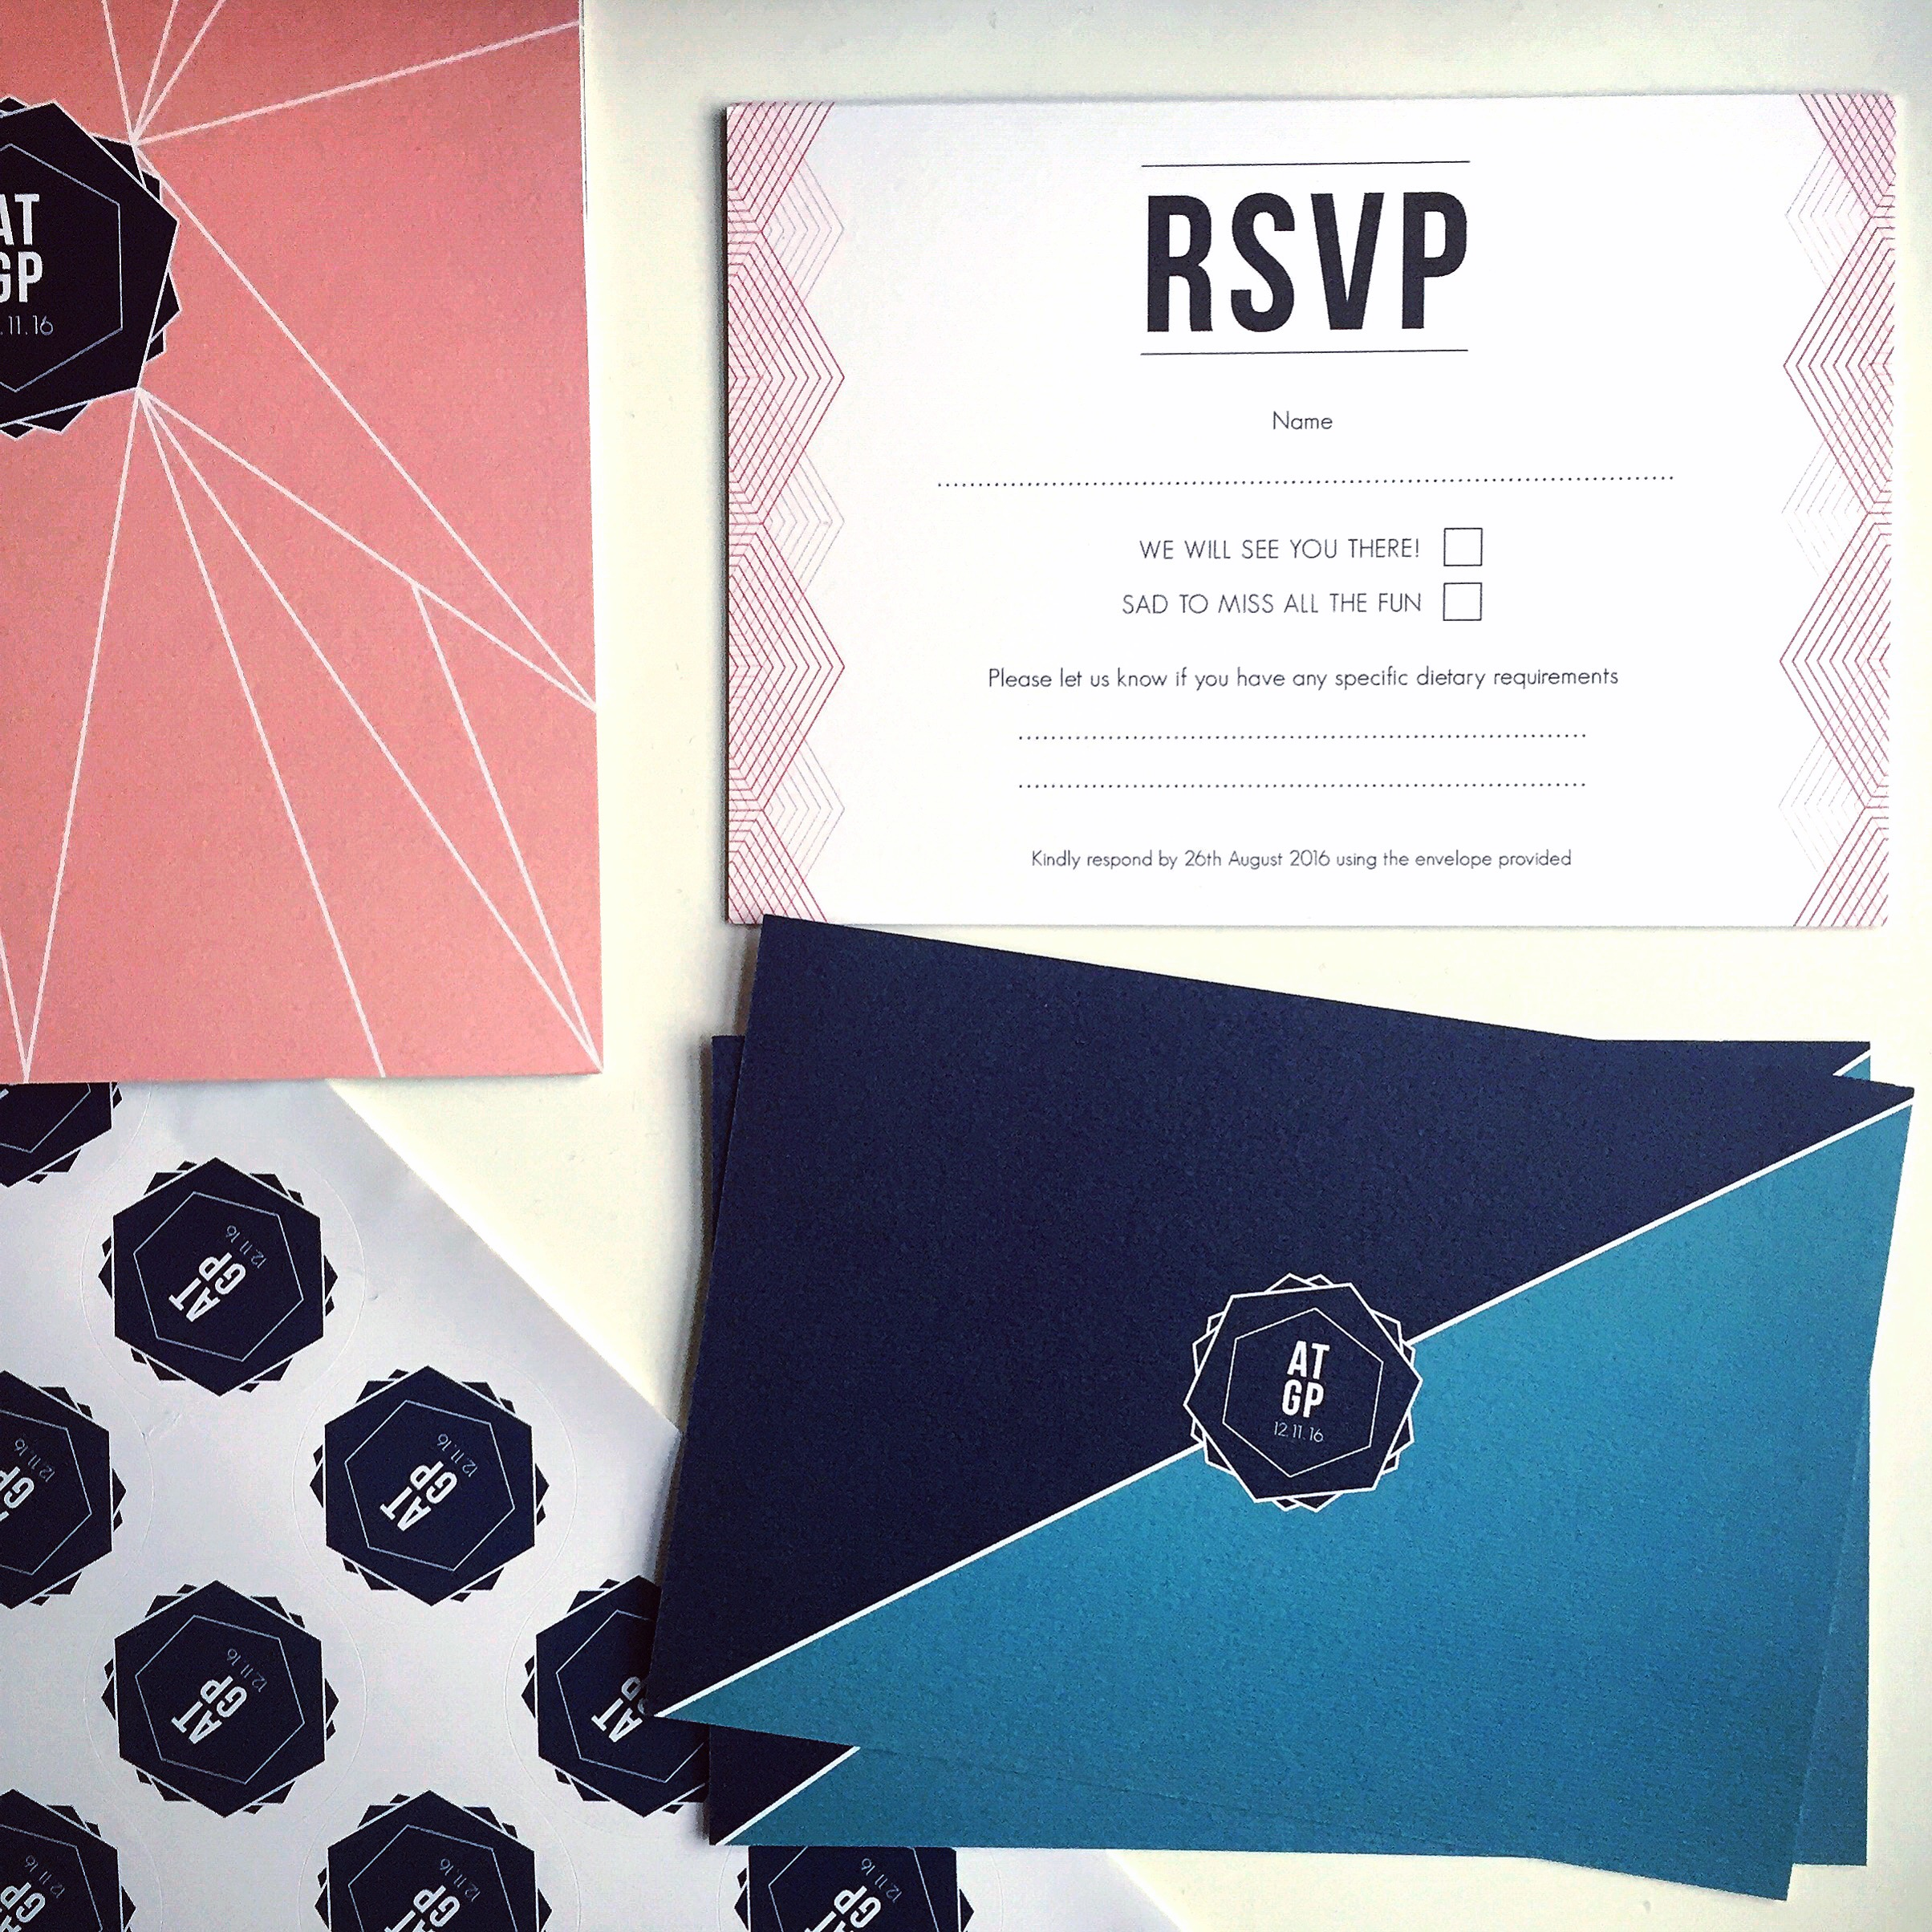 geometric-copper-invite-wedding-the-ink-closet-rsvp-2.JPG